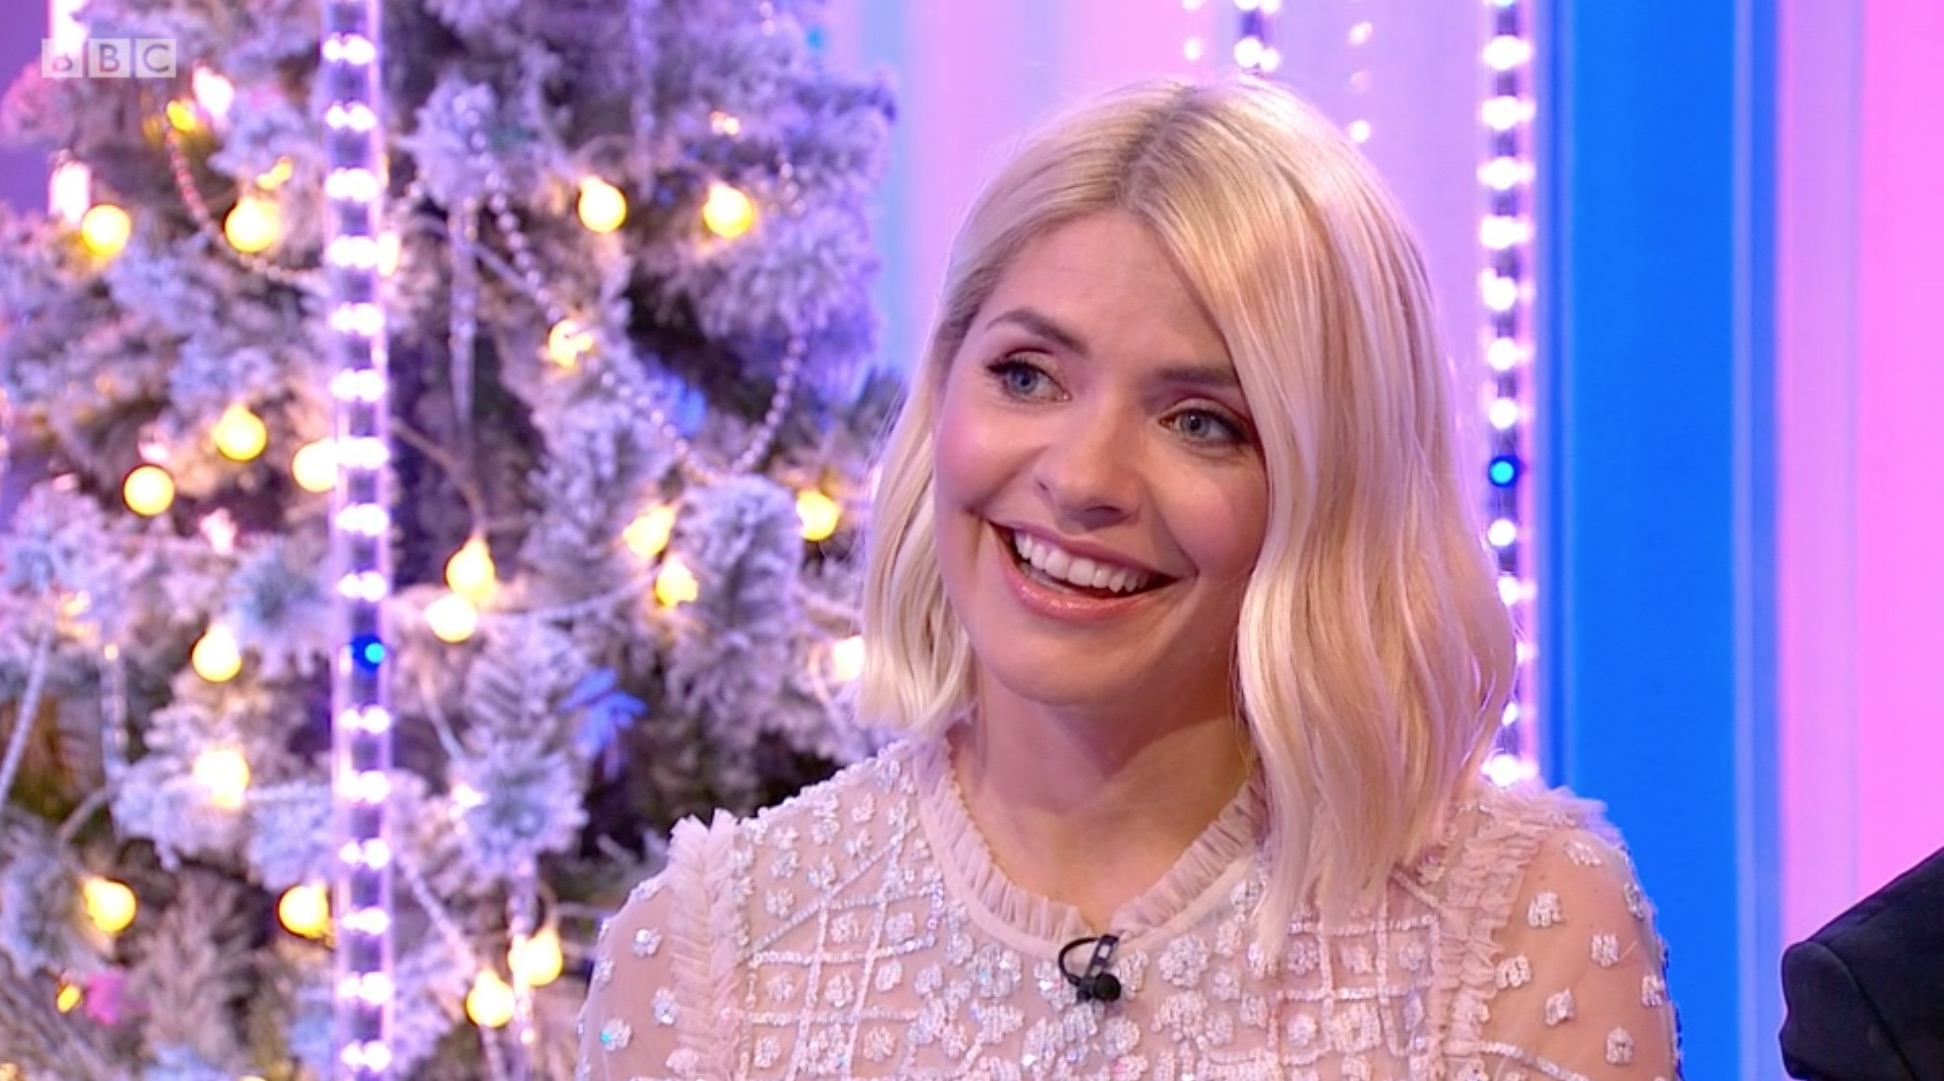 Holly Willoughby asked about 'difficult co-stars' on The One Show amid Phillip Schofield 'feud' rumours